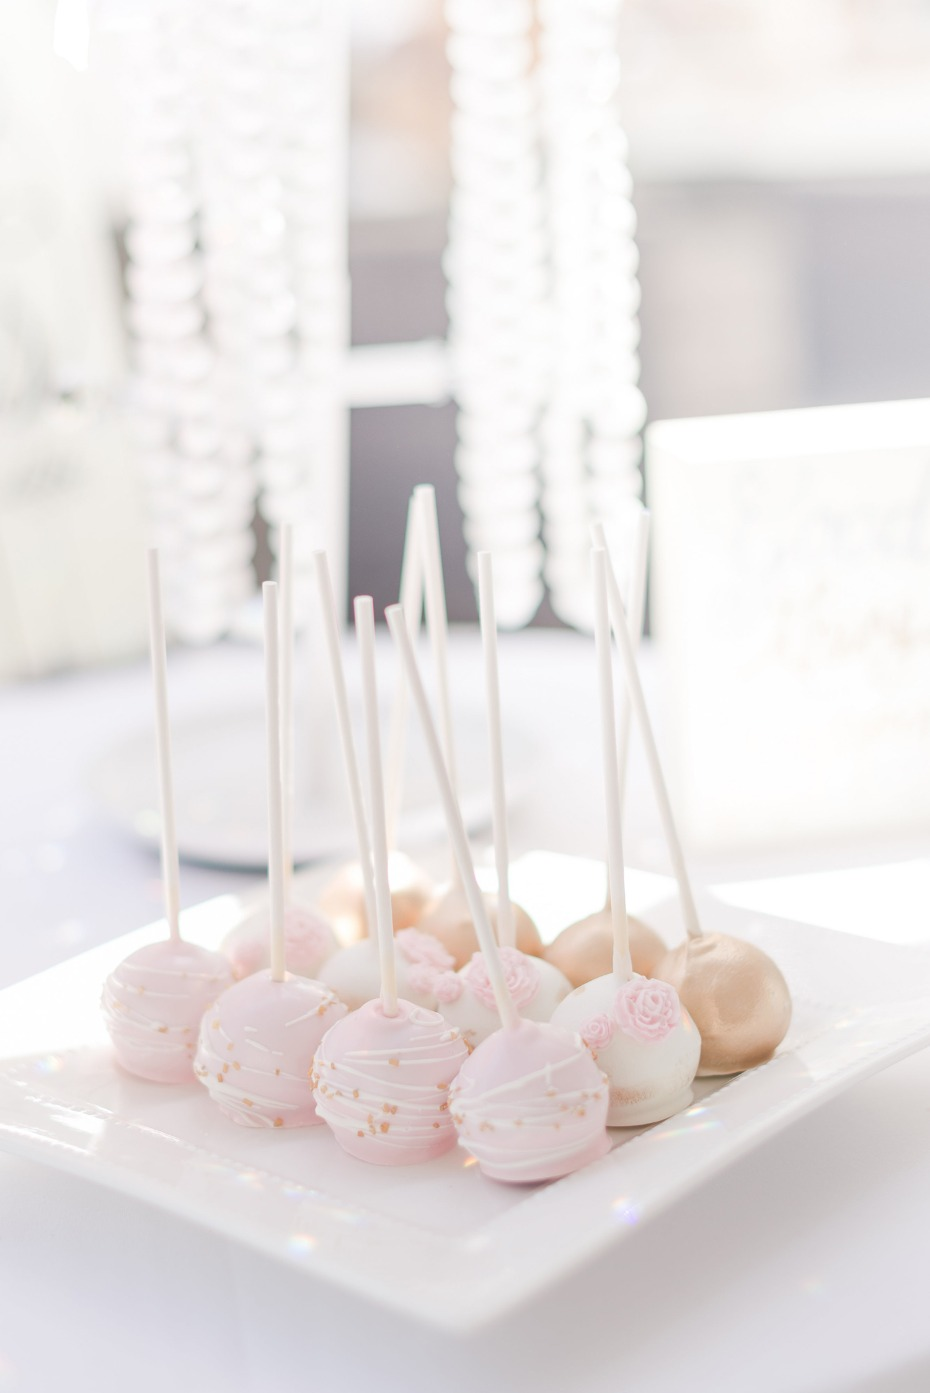 Fancy cake pops for a bridal shower